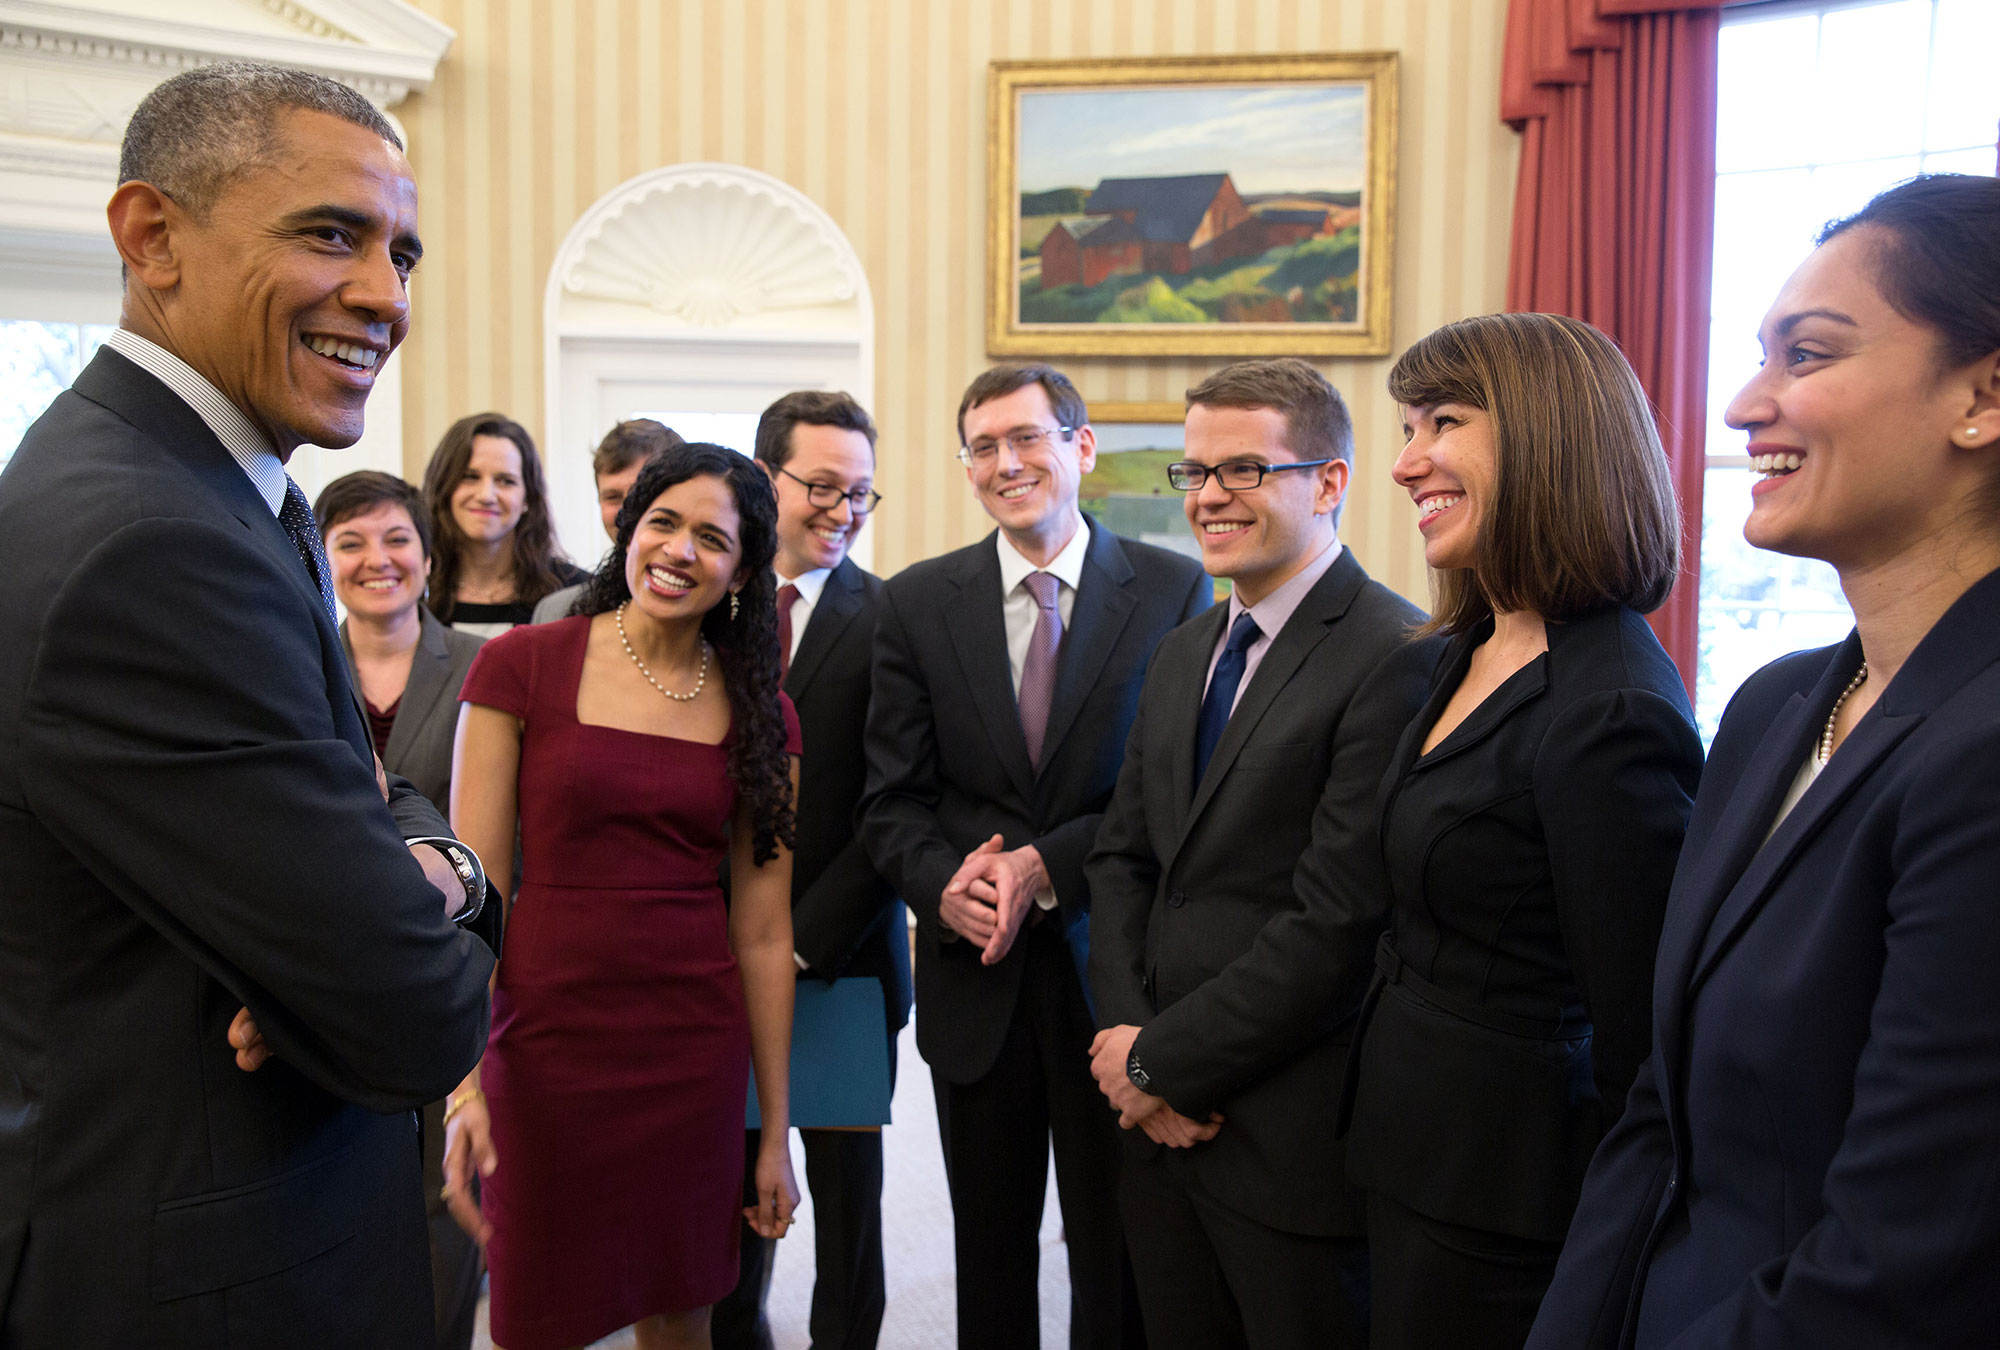 President Obama with members of the SBST